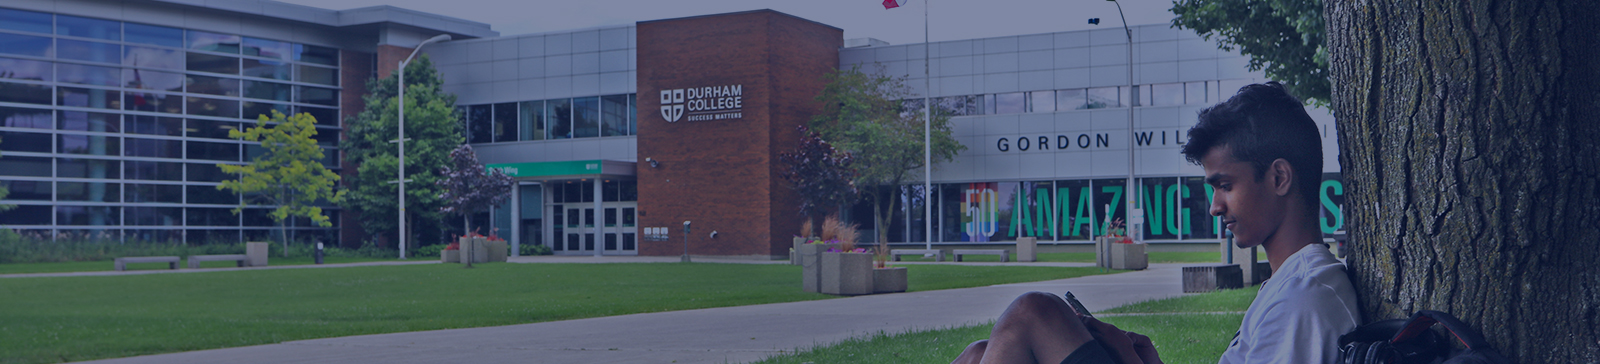 Image of Durham College